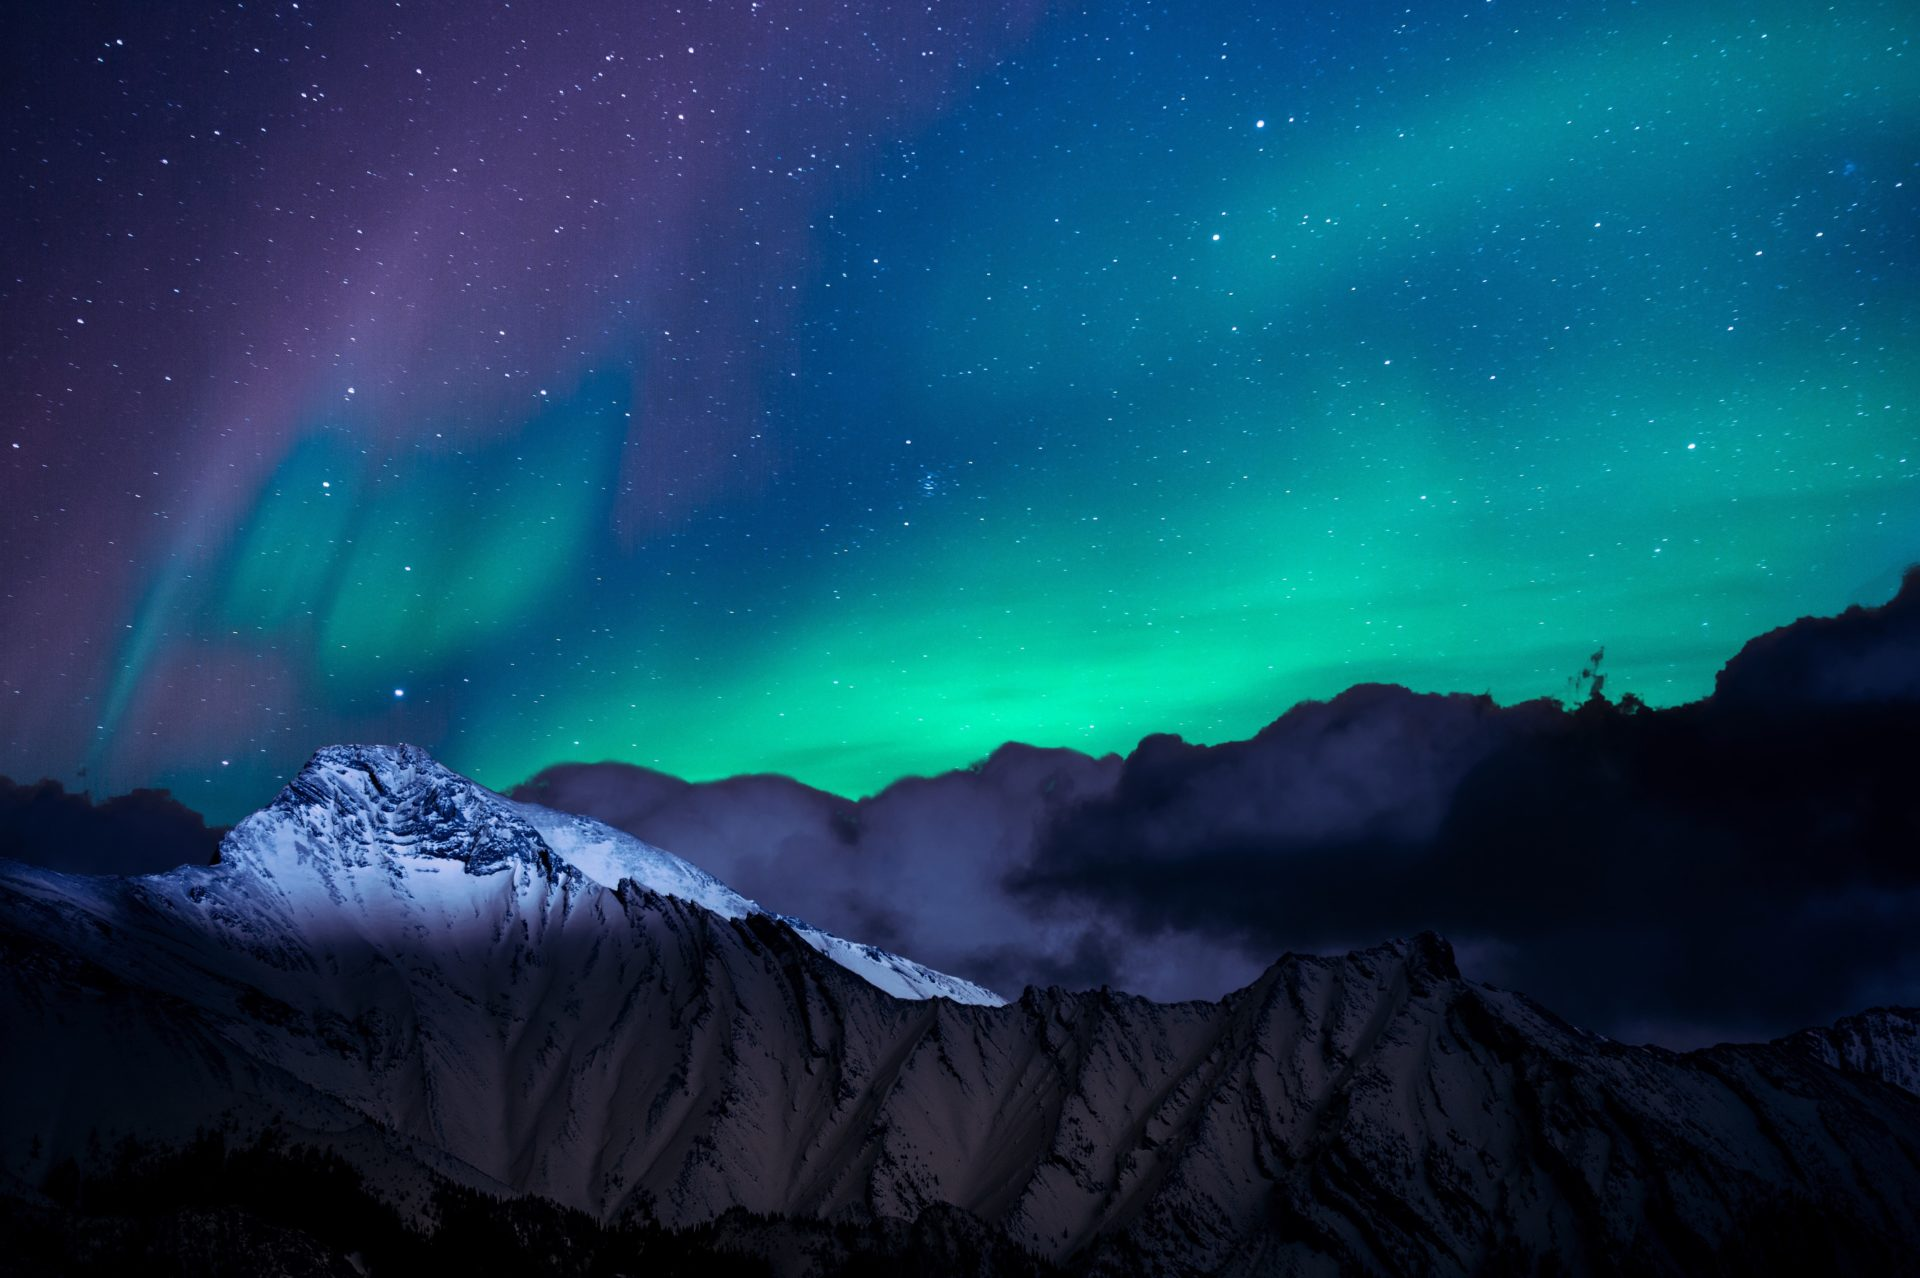 landscape-photo-of-mountain-with-polar-lights-1434608